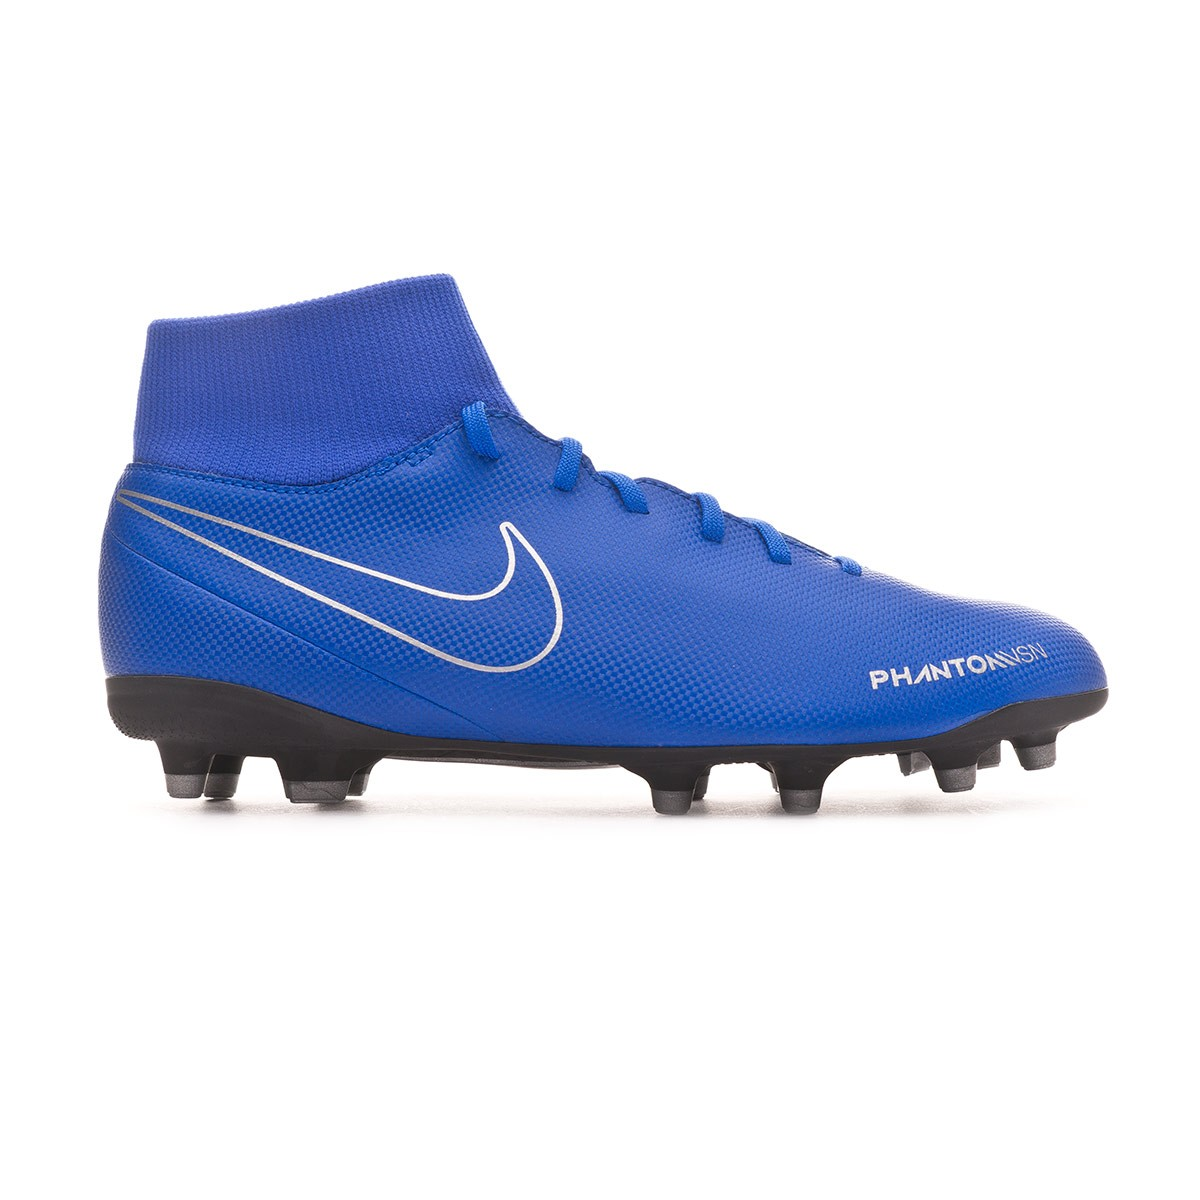 4ba7018e3f619 Football Boots Nike Phantom Vision Club DF FG MG Racer blue-Black - Tienda  de fútbol Fútbol Emotion